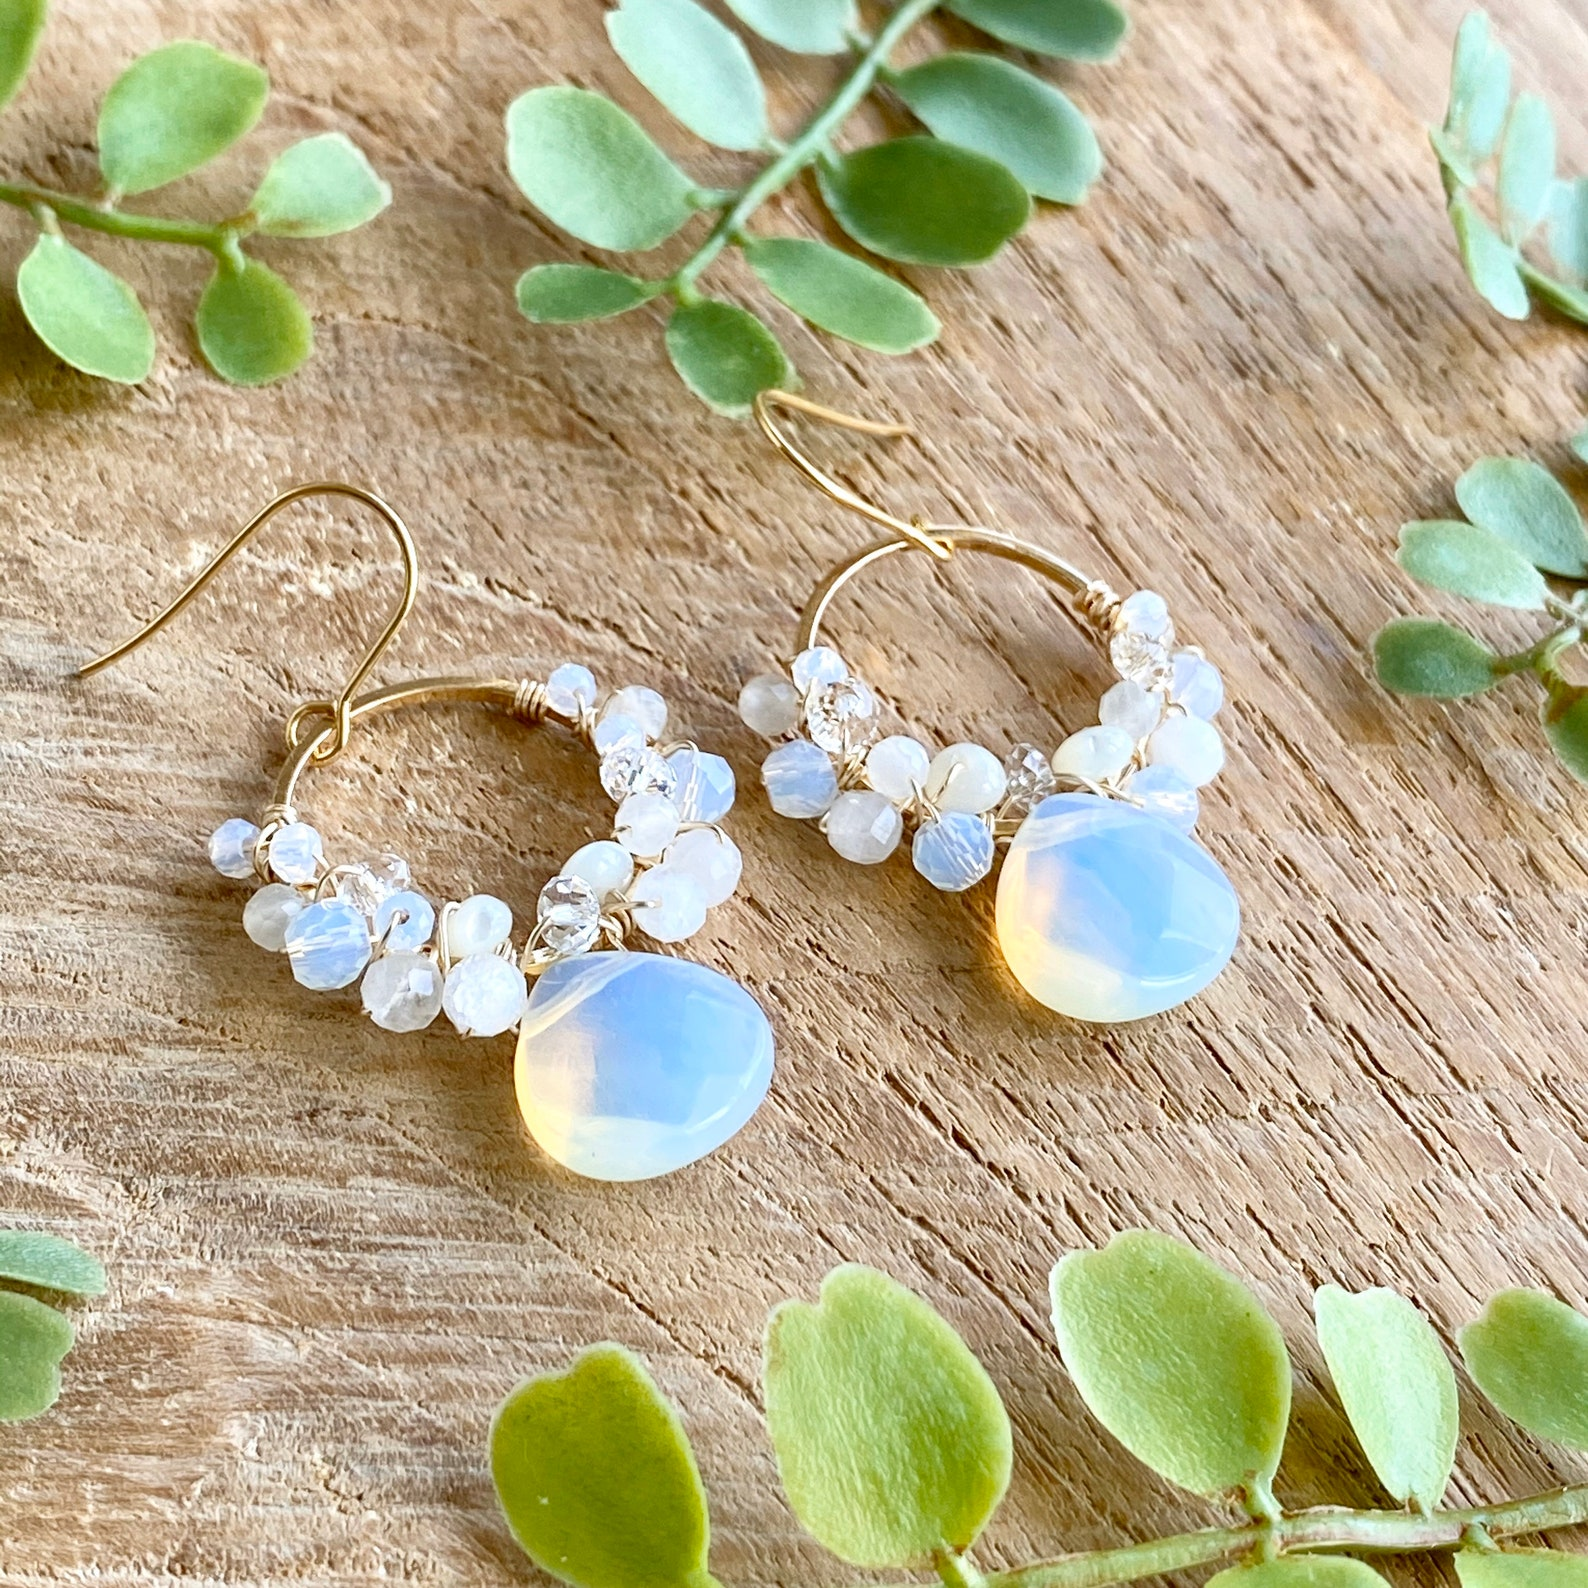 These earrings made of local pearls make wonderful Hawaiian gifts for her